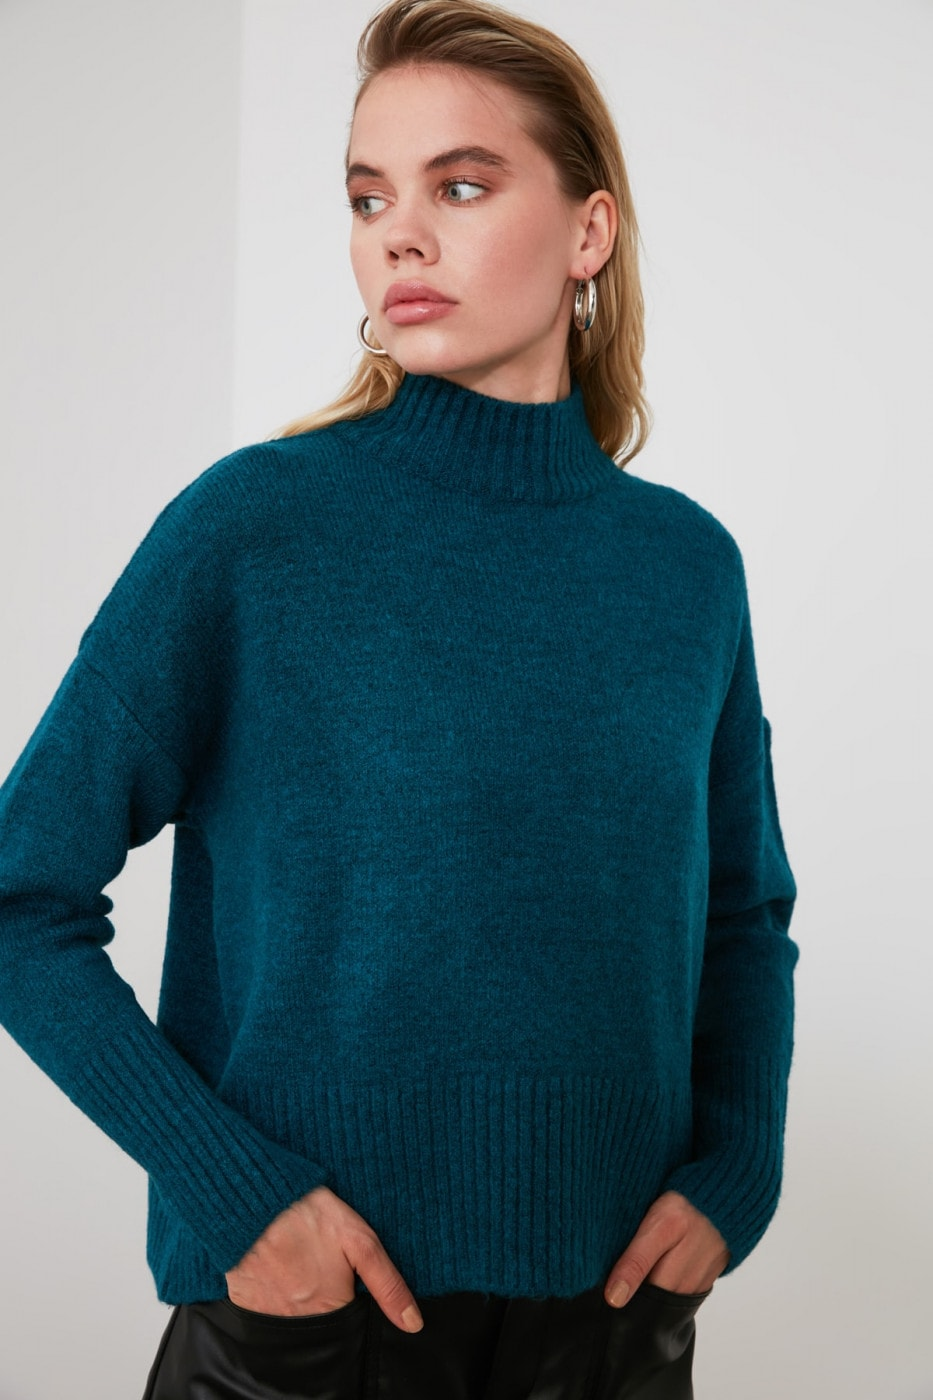 Trendyol Oil Upright Collar KnitSweater